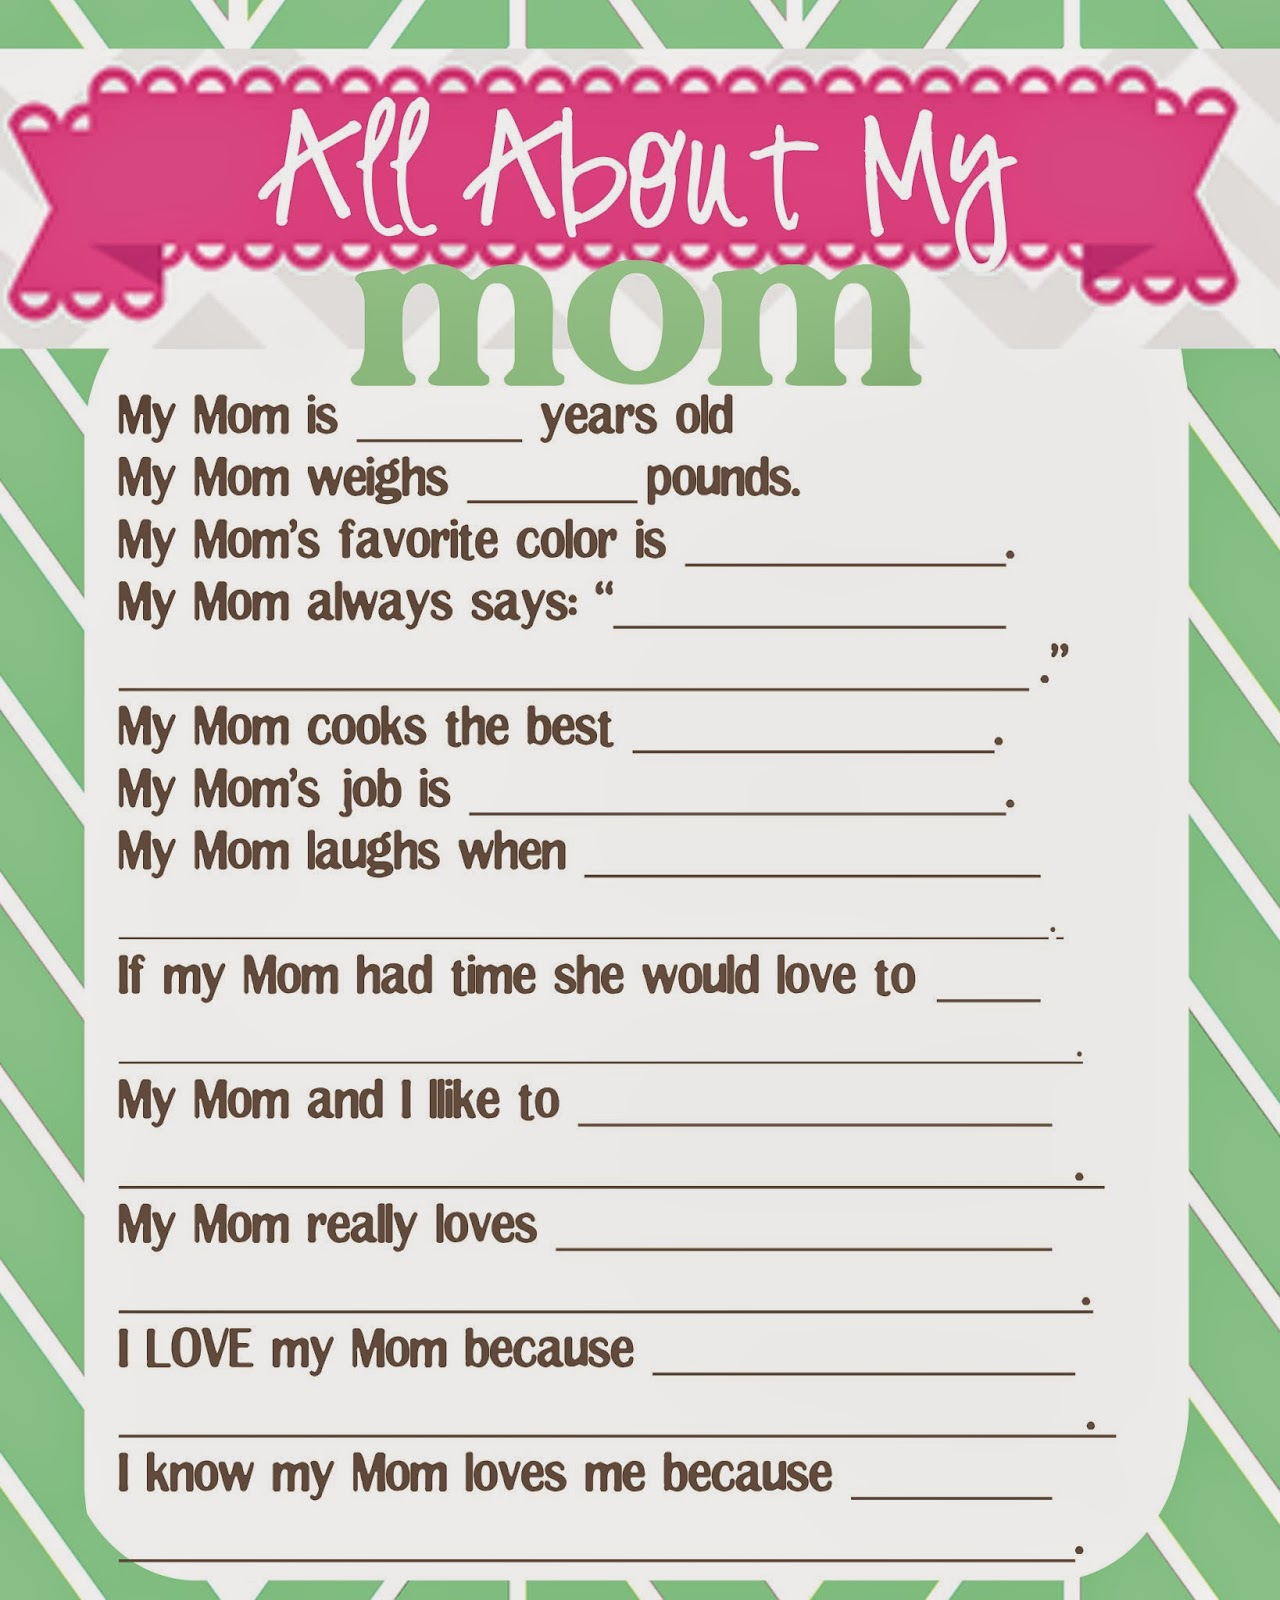 What Does The Cox Say Mother S Day Questionnaire And